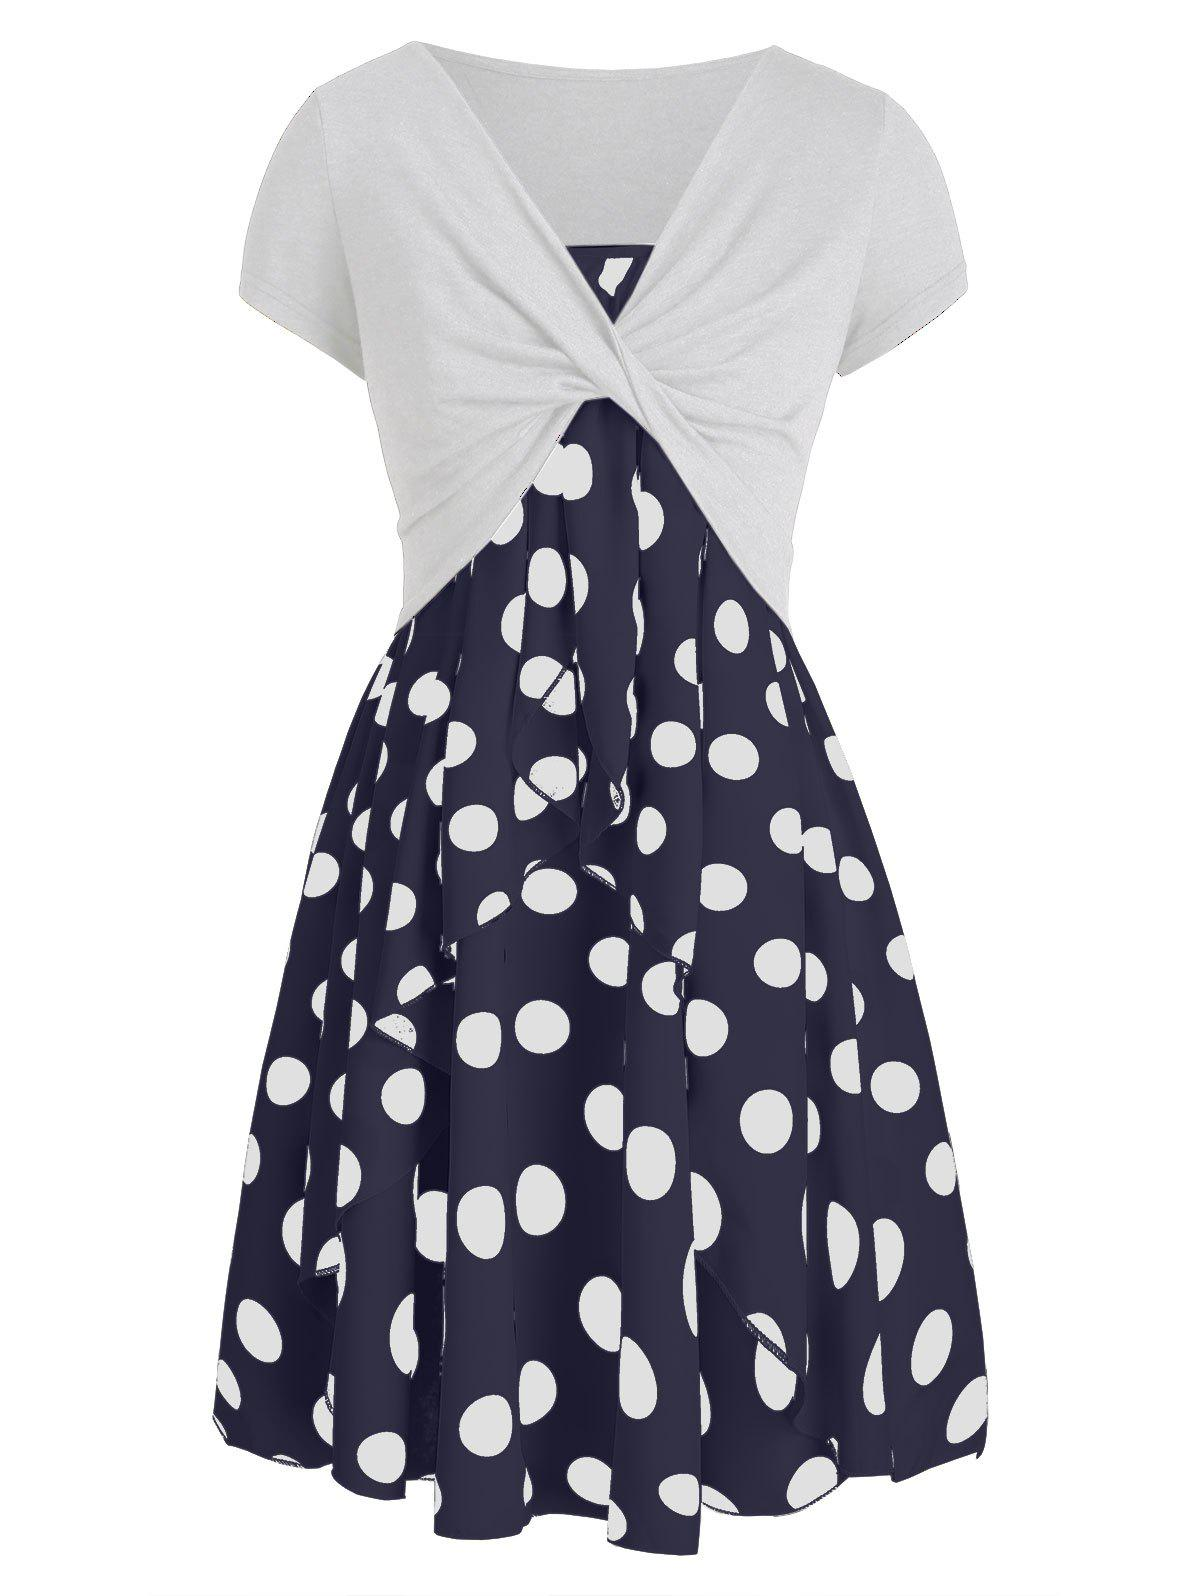 Polka Dot Cami Dress with Plunging T-shirt - CADETBLUE M